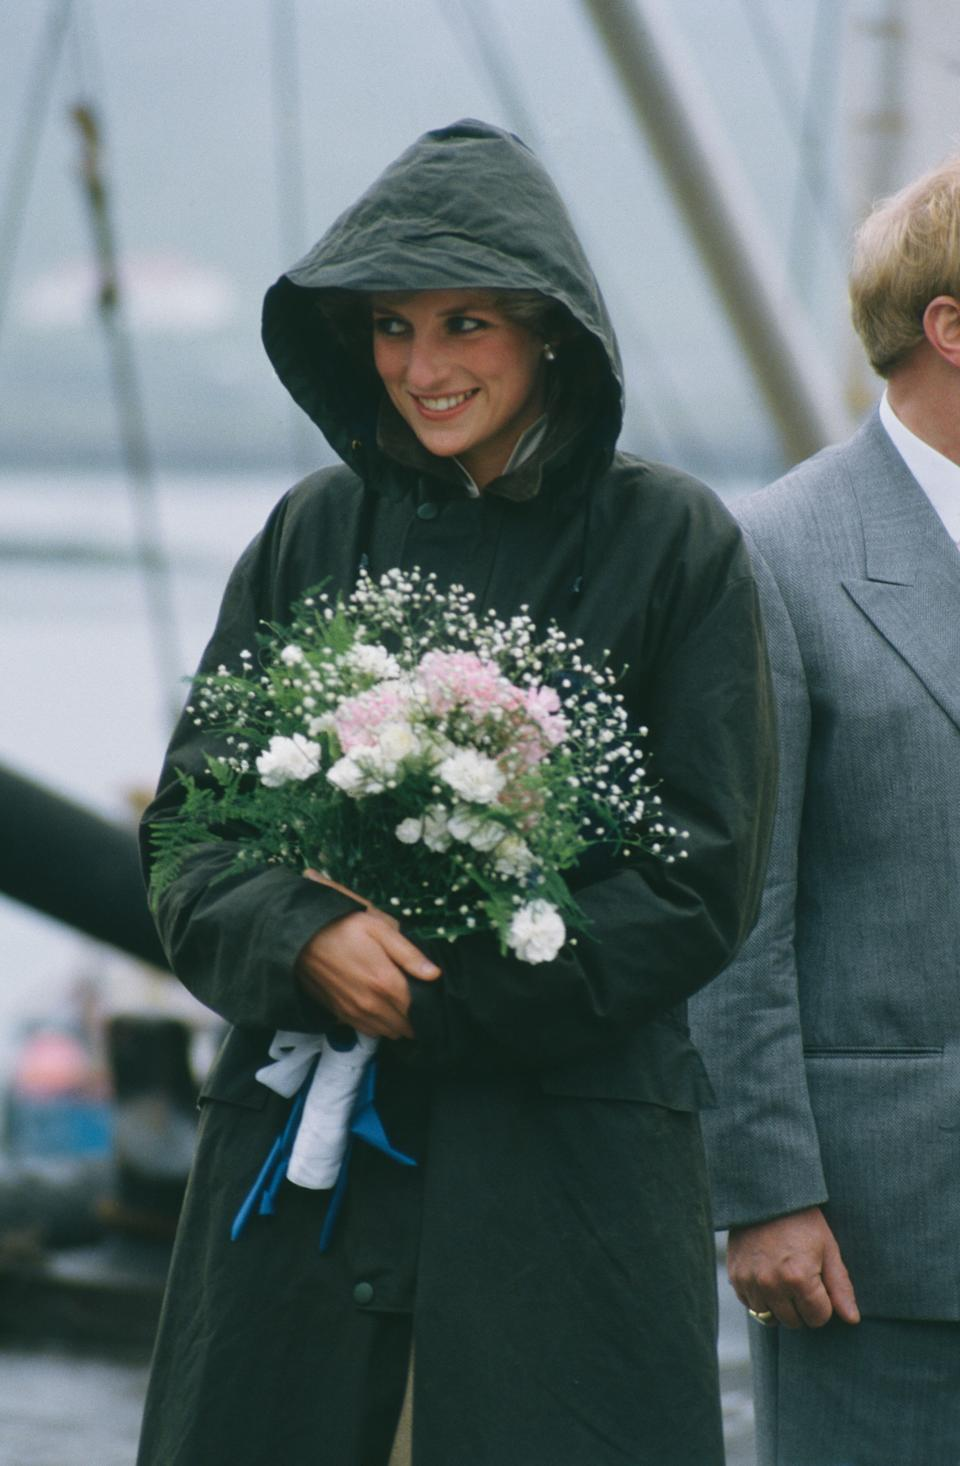 Diana, Princess of Wales  (1961 - 1997) in Ardveenish, in the Western Isles of Scotland, July 1985. She is wearing a Barbour coat.   (Photo by Jayne Fincher/Princess Diana Archive/Getty Images) (Photo: Princess Diana Archive via Getty Images)